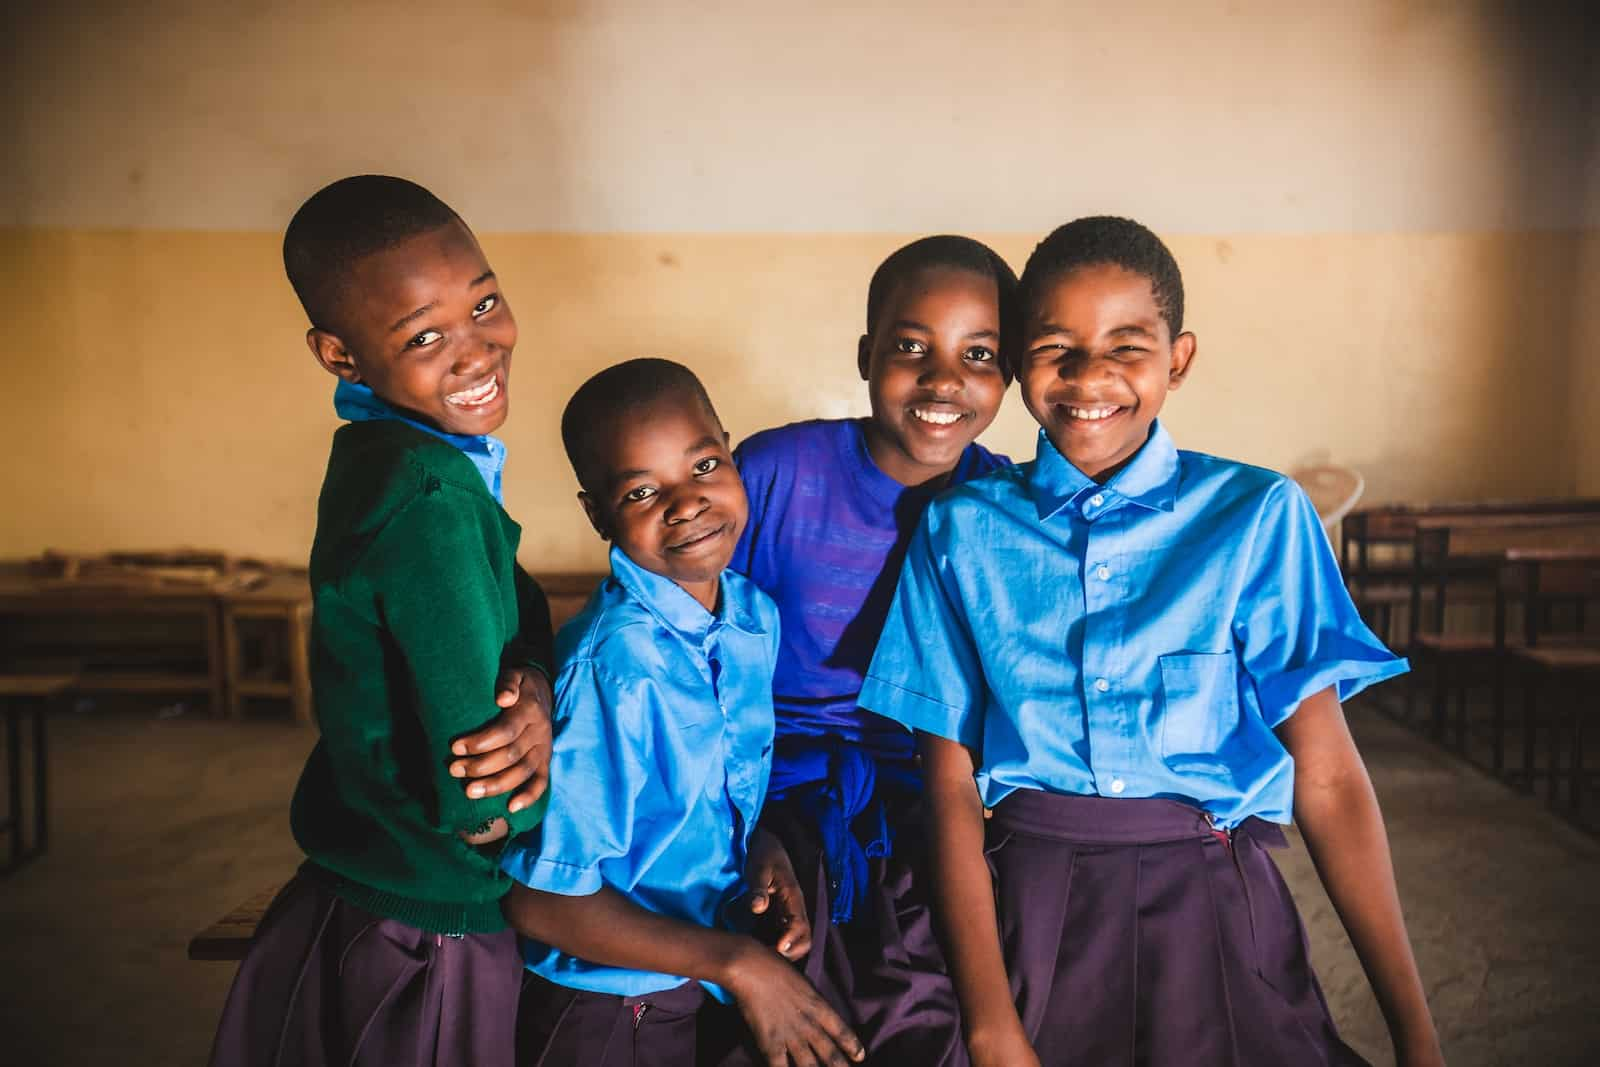 Four young Tanzanian girls wearing school uniforms smile at the camera.